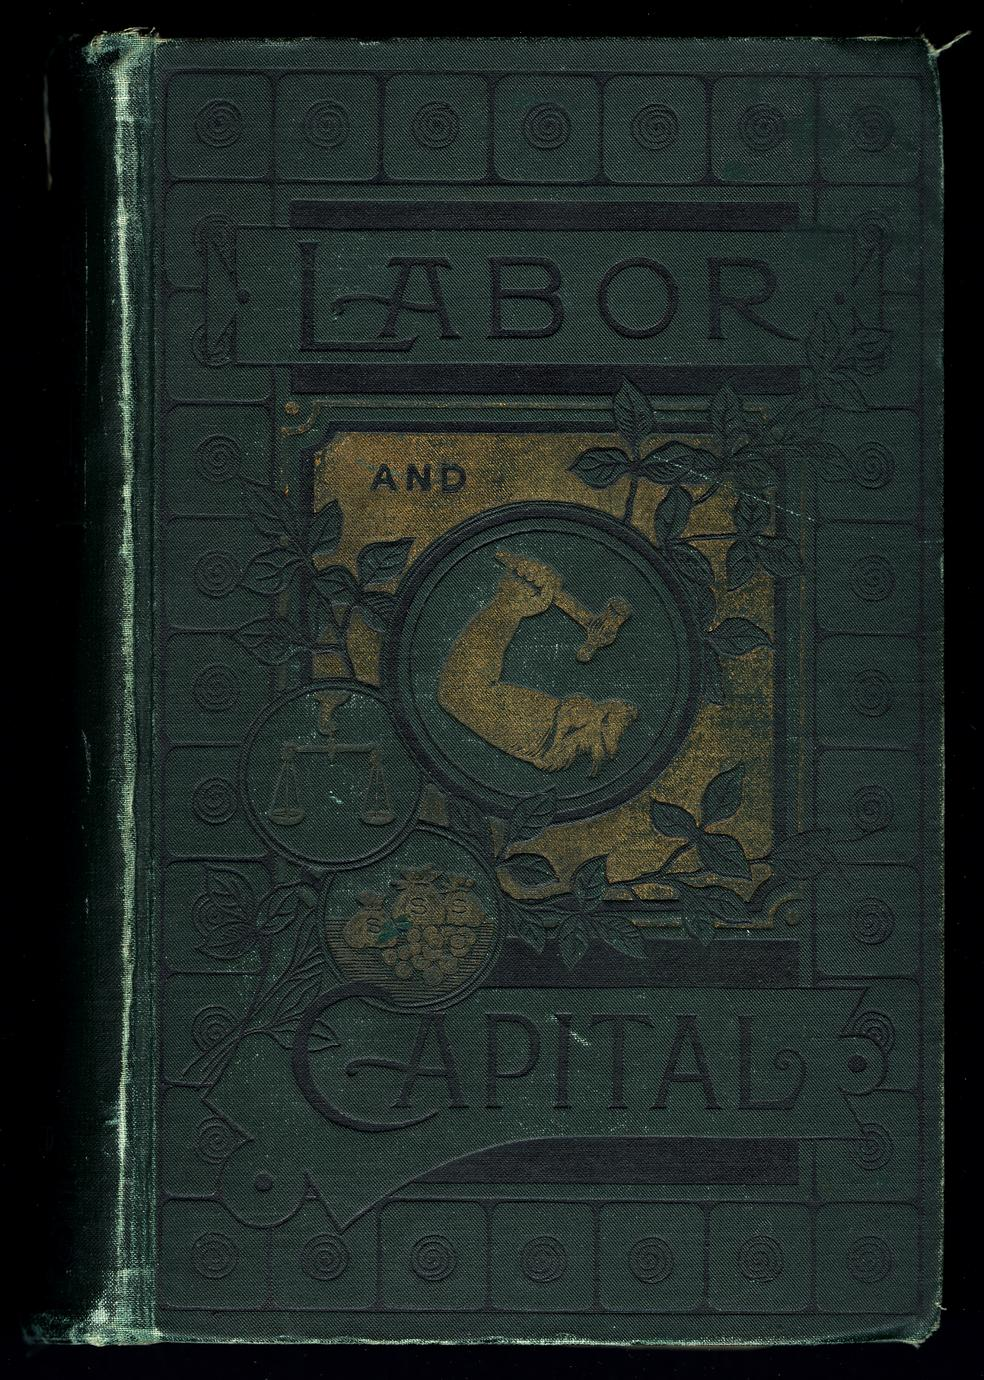 Labor and capital (1 of 3)